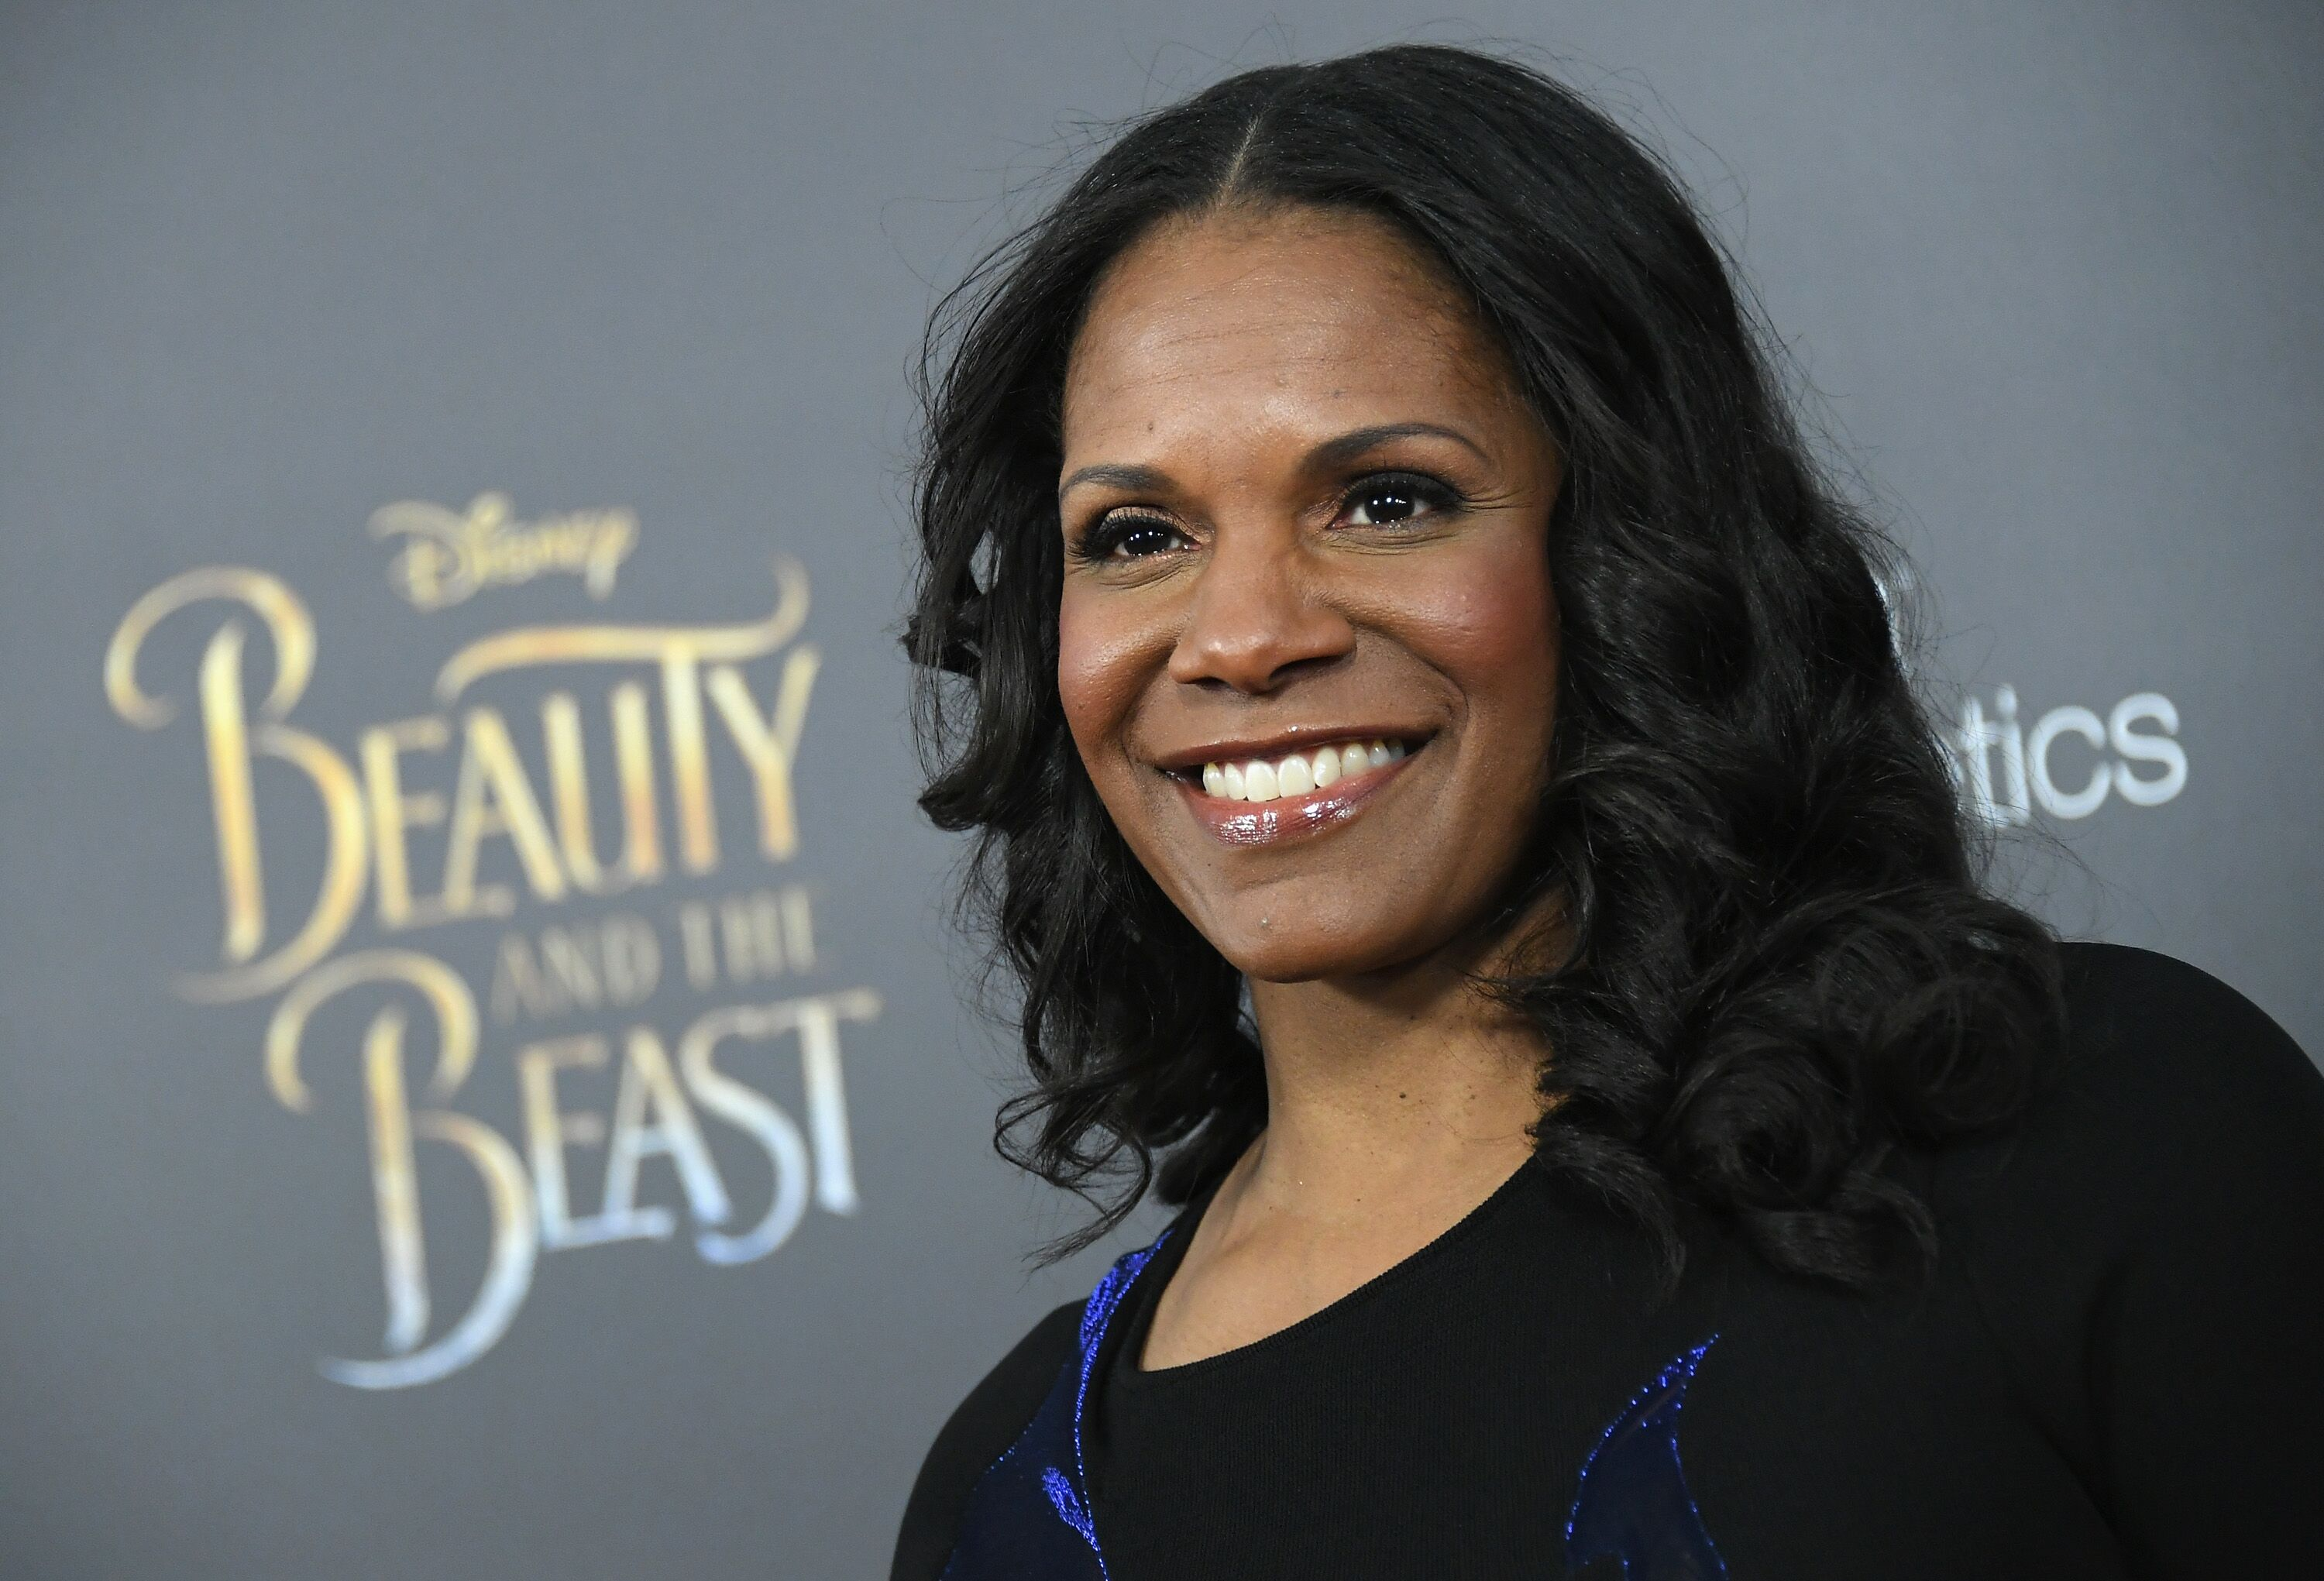 Ff Revisiting The Beauty And The Beast Cast S Biggest